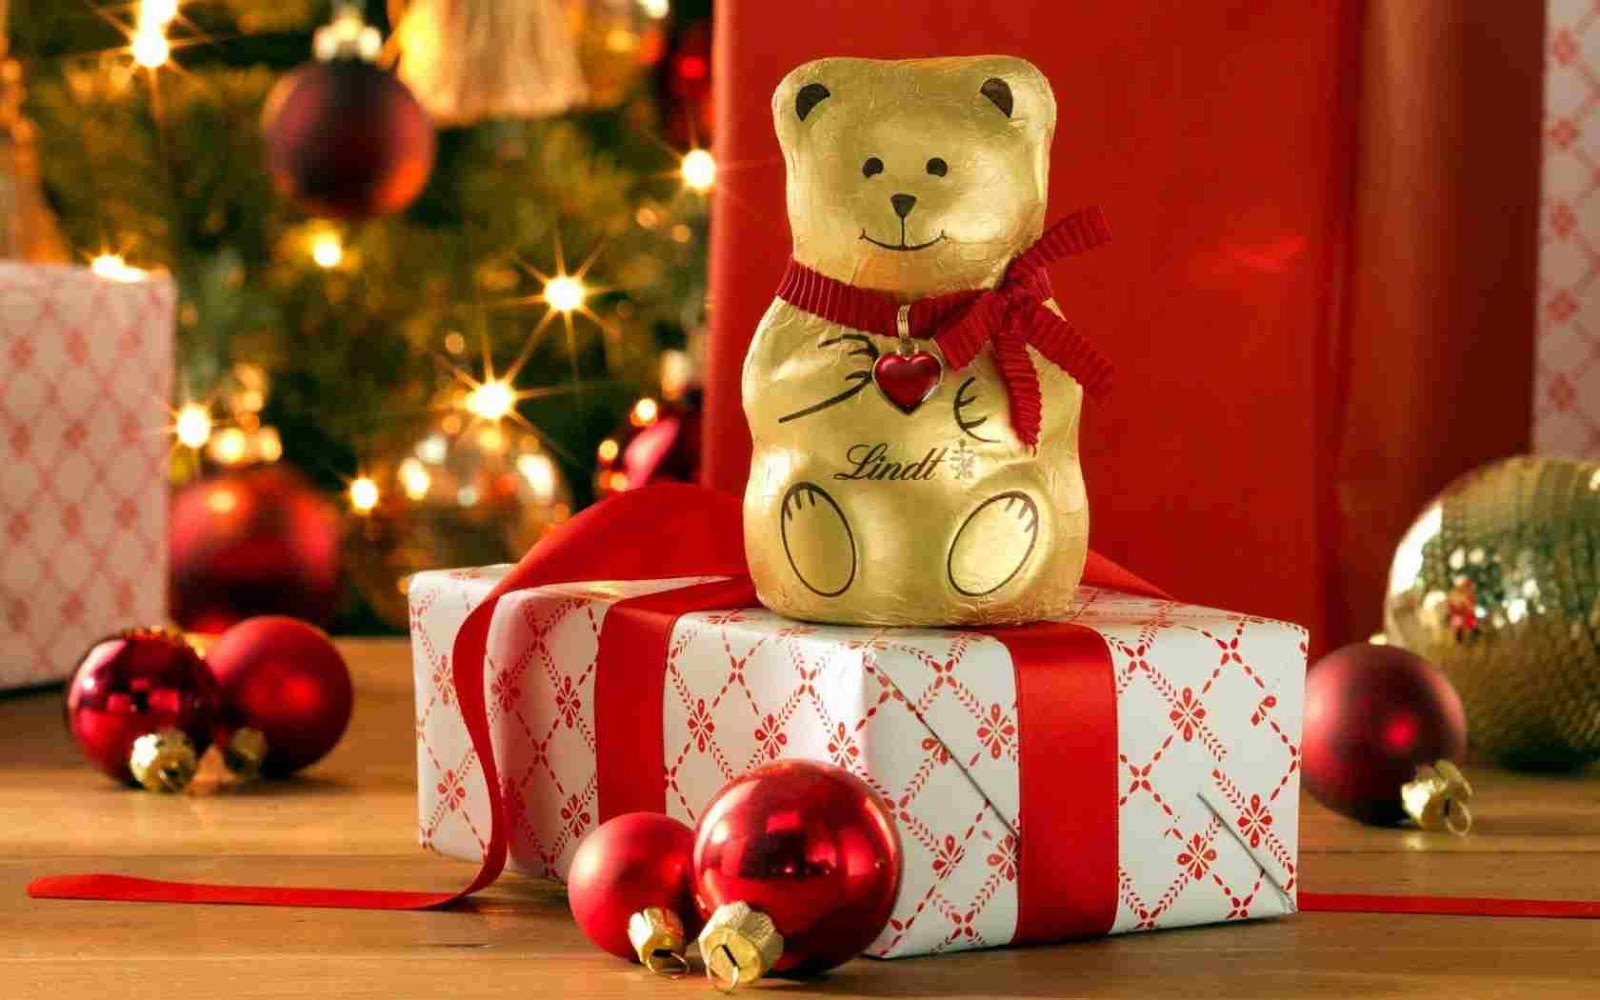 47bb2f70c8e06 ... online website to get new year gift ideas 2018 and searching for  sending gifts to your loved ones online then you are on the perfect online  site.